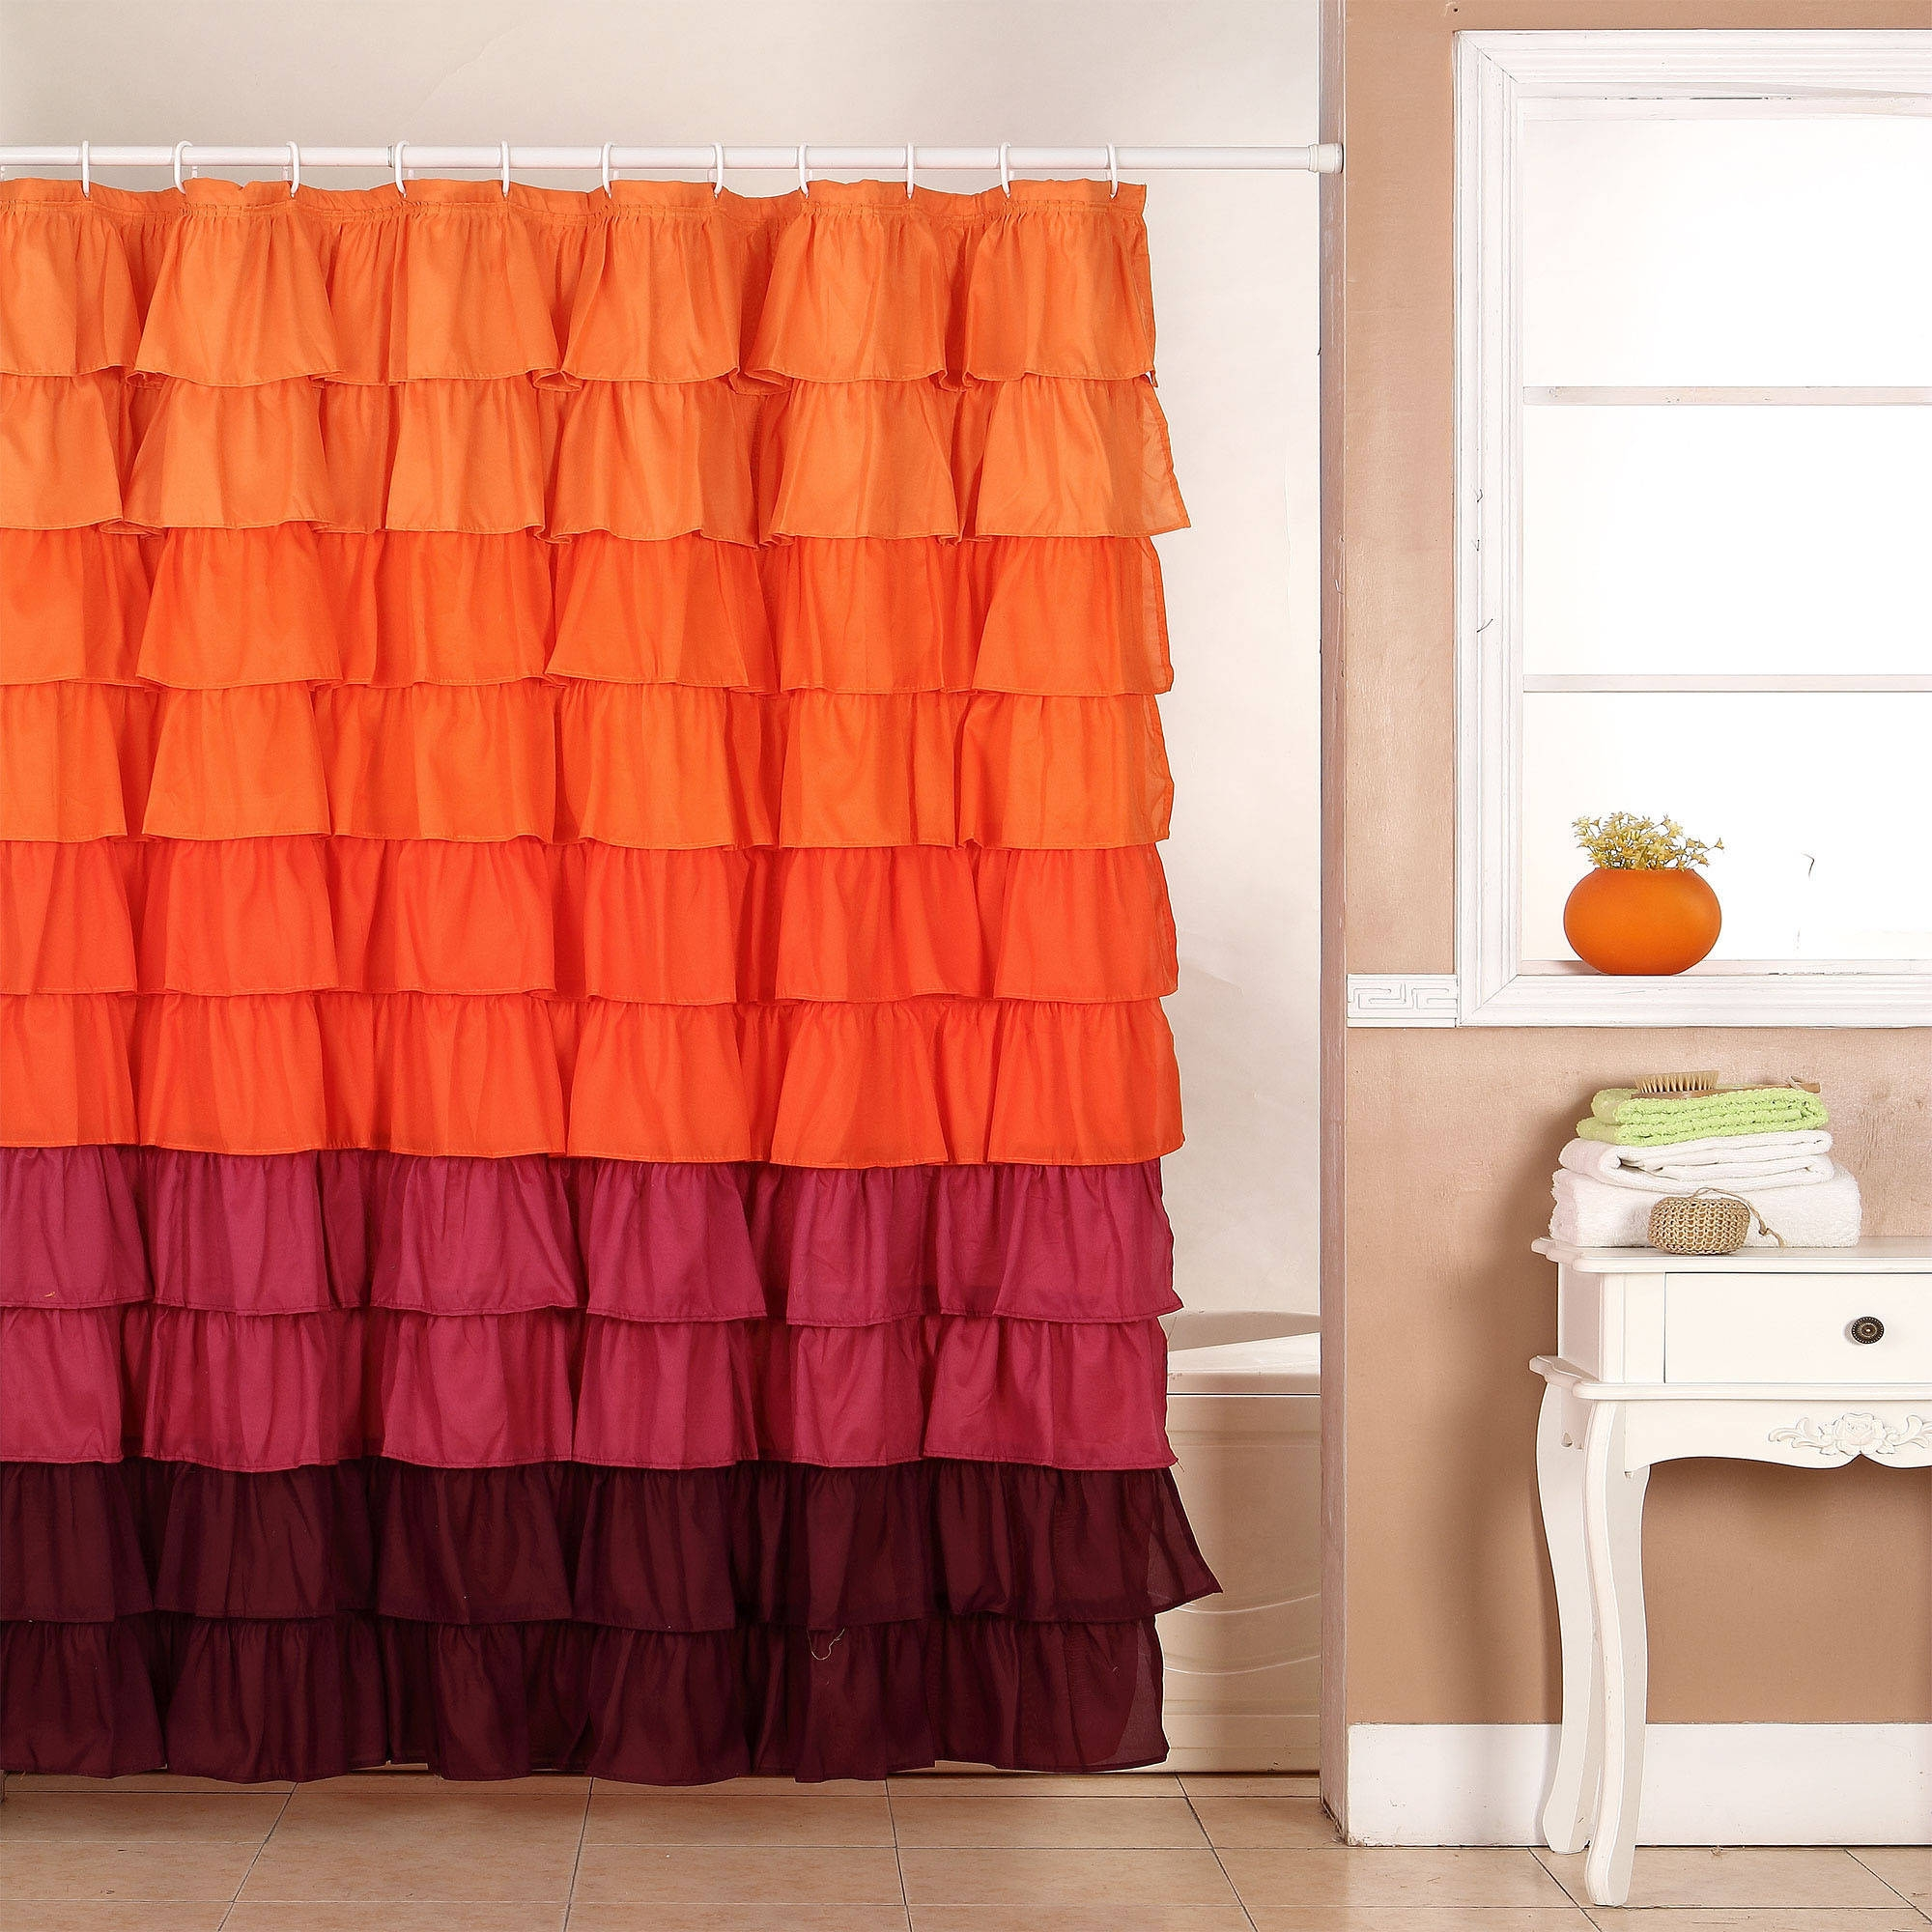 Peach Shower Curtain Curtains Decoration For Peach Colored Curtains (Image 18 of 25)